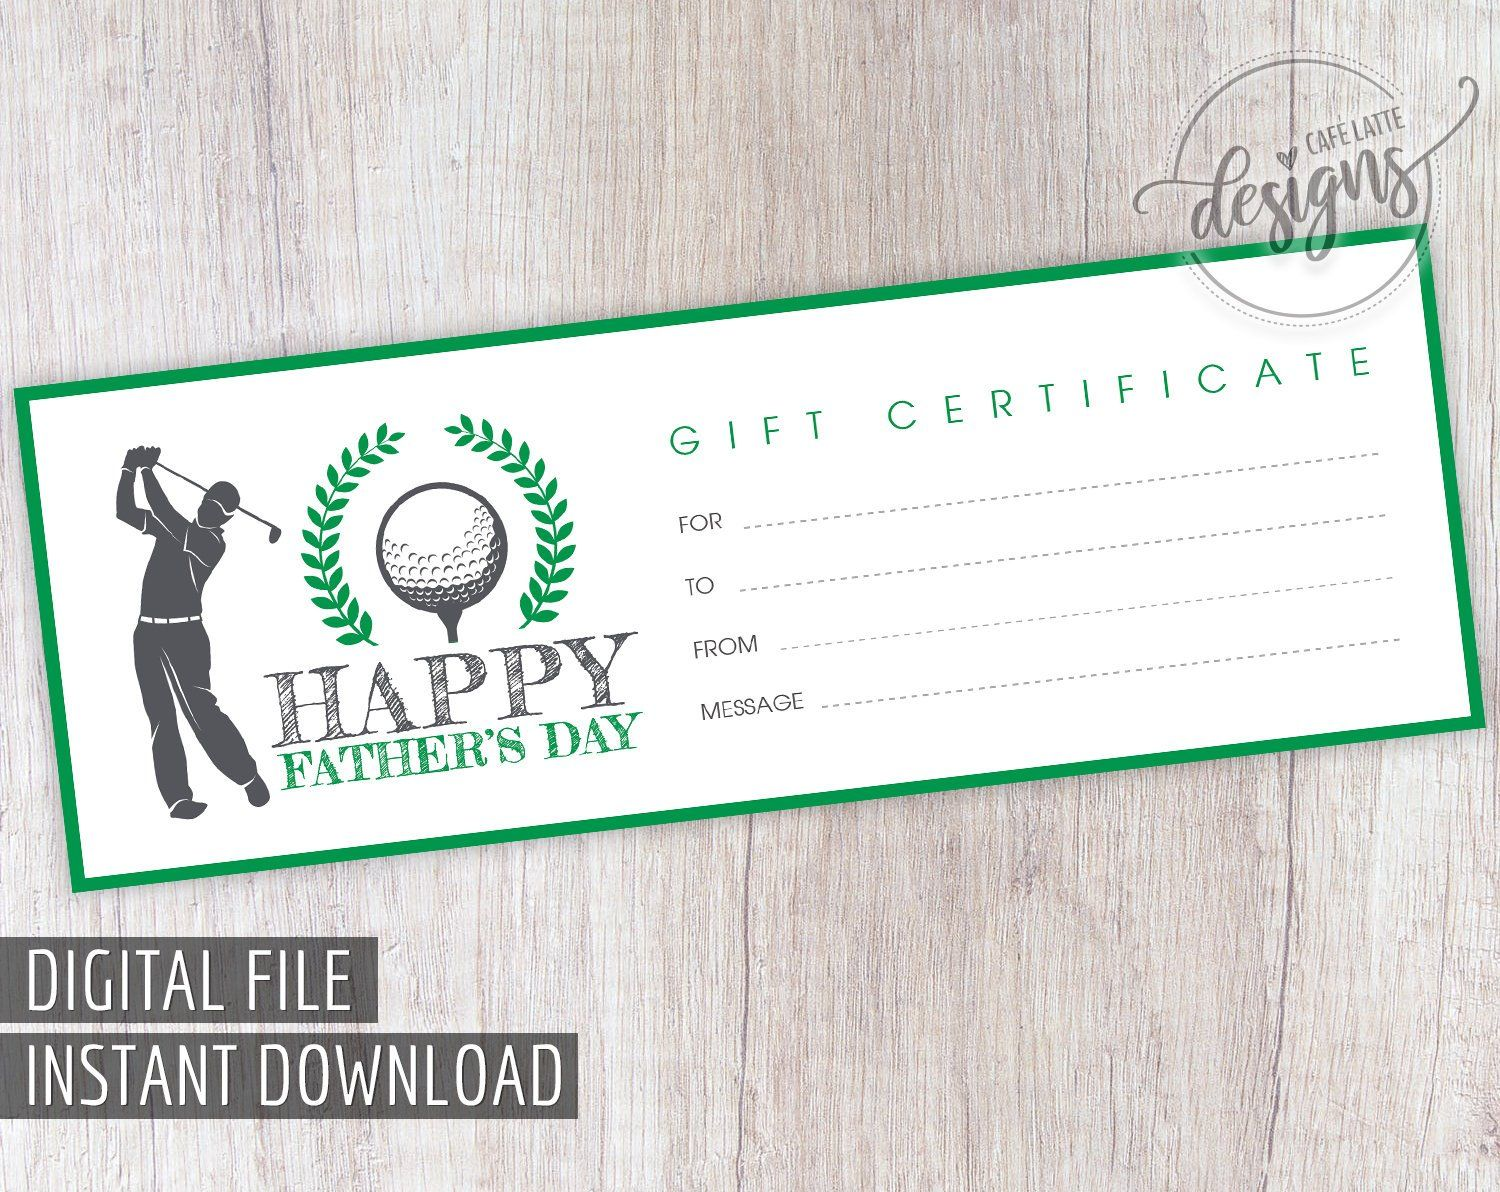 Father S Day Gift Certificate Golf Player Printable Gift Coupon For Dad Grandpa Gift Card Instant Download Gift Idea For Him For Man Men Printable Gift Certificate Gift Certificates Printable Gift